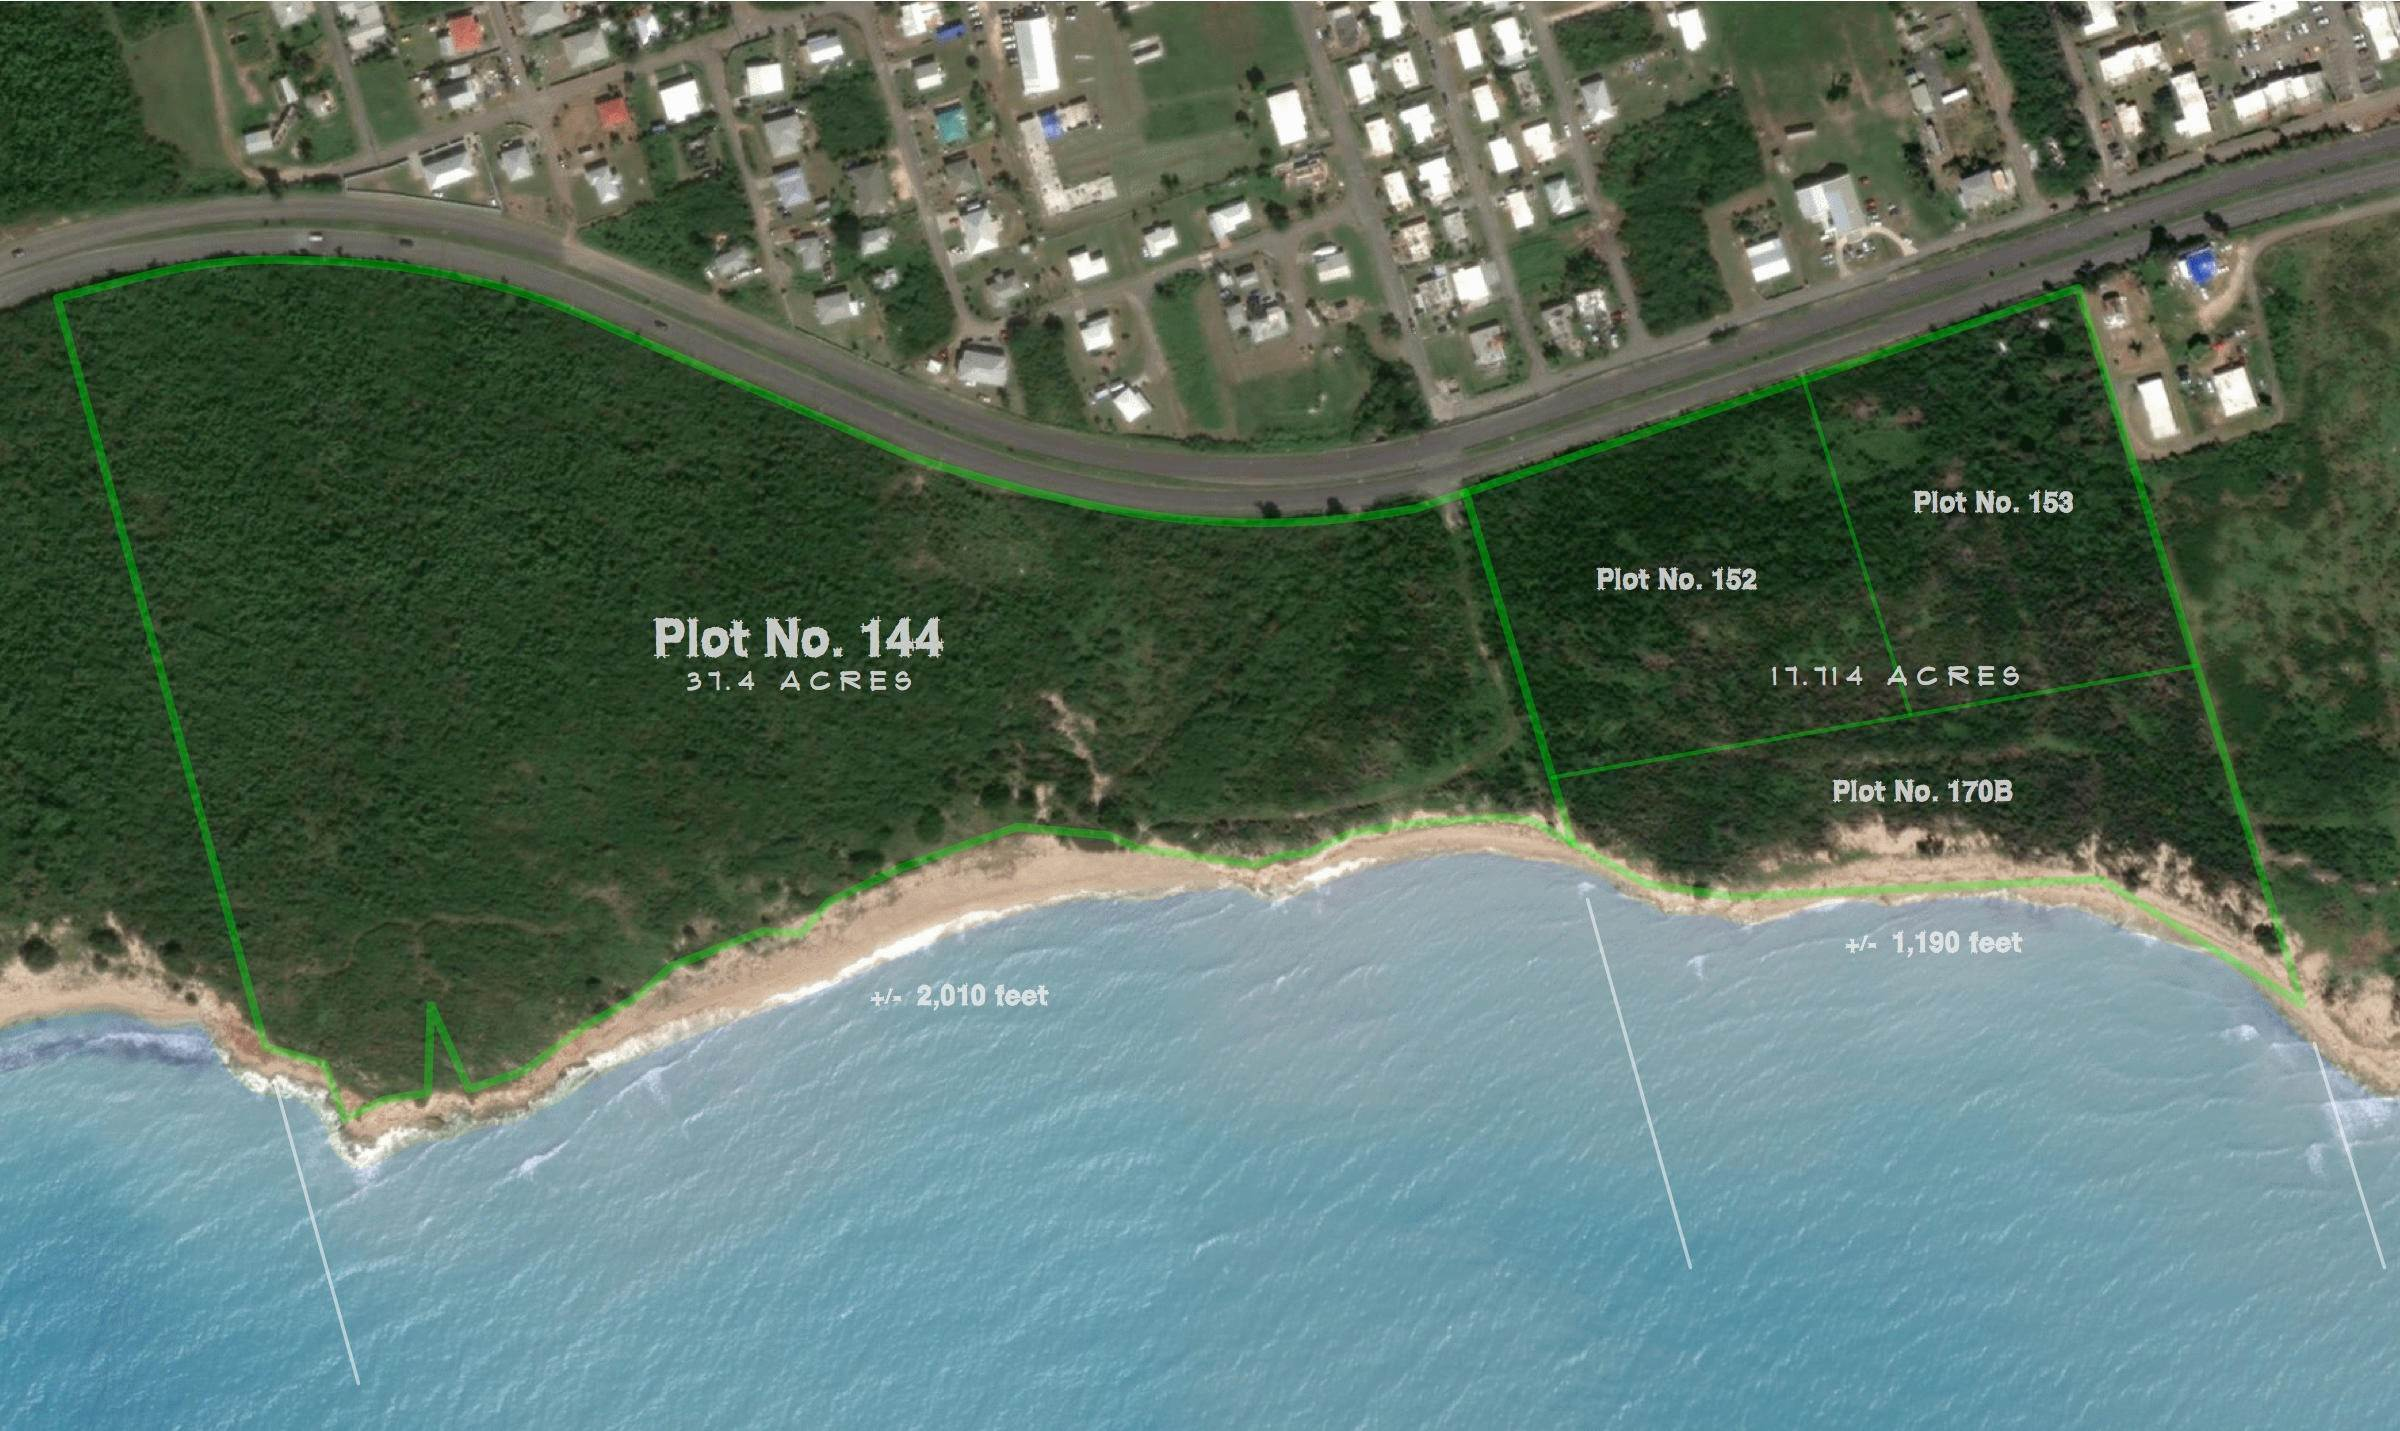 Land for Sale at 144 et al Whim (Two Will) WE St Croix, Virgin Islands 00840 United States Virgin Islands